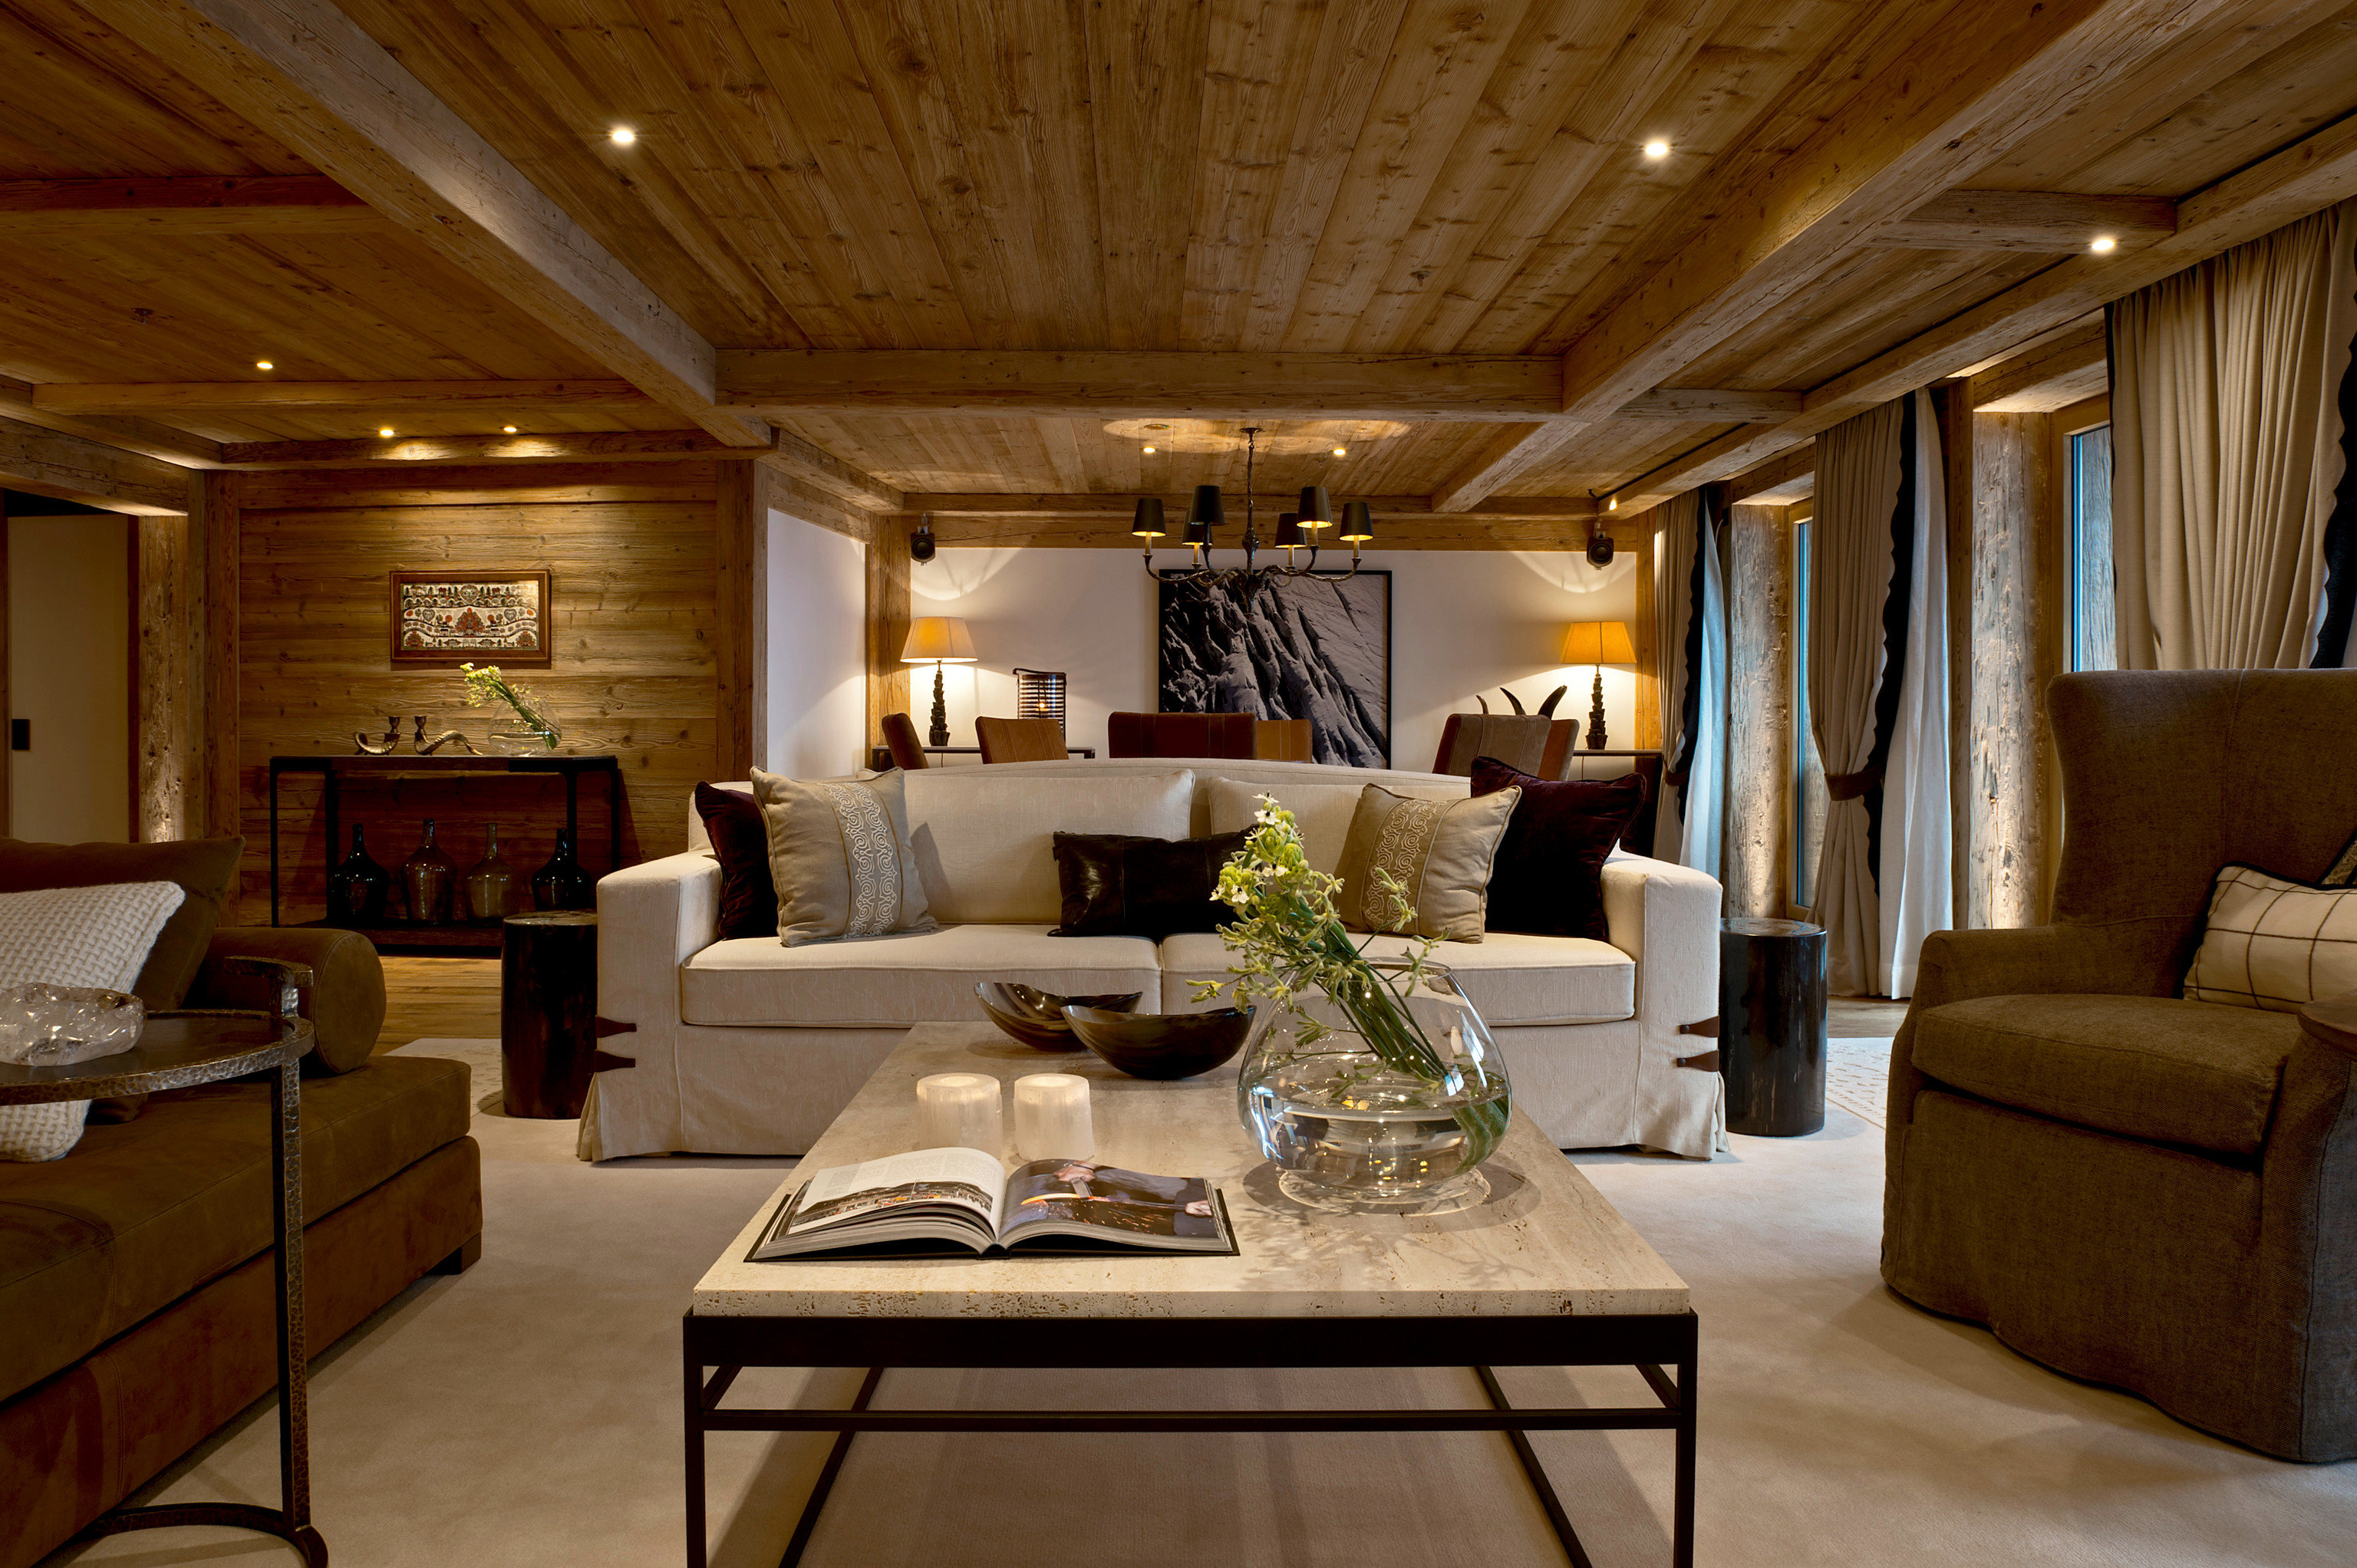 living room property home cottage Suite mansion farmhouse recreation room